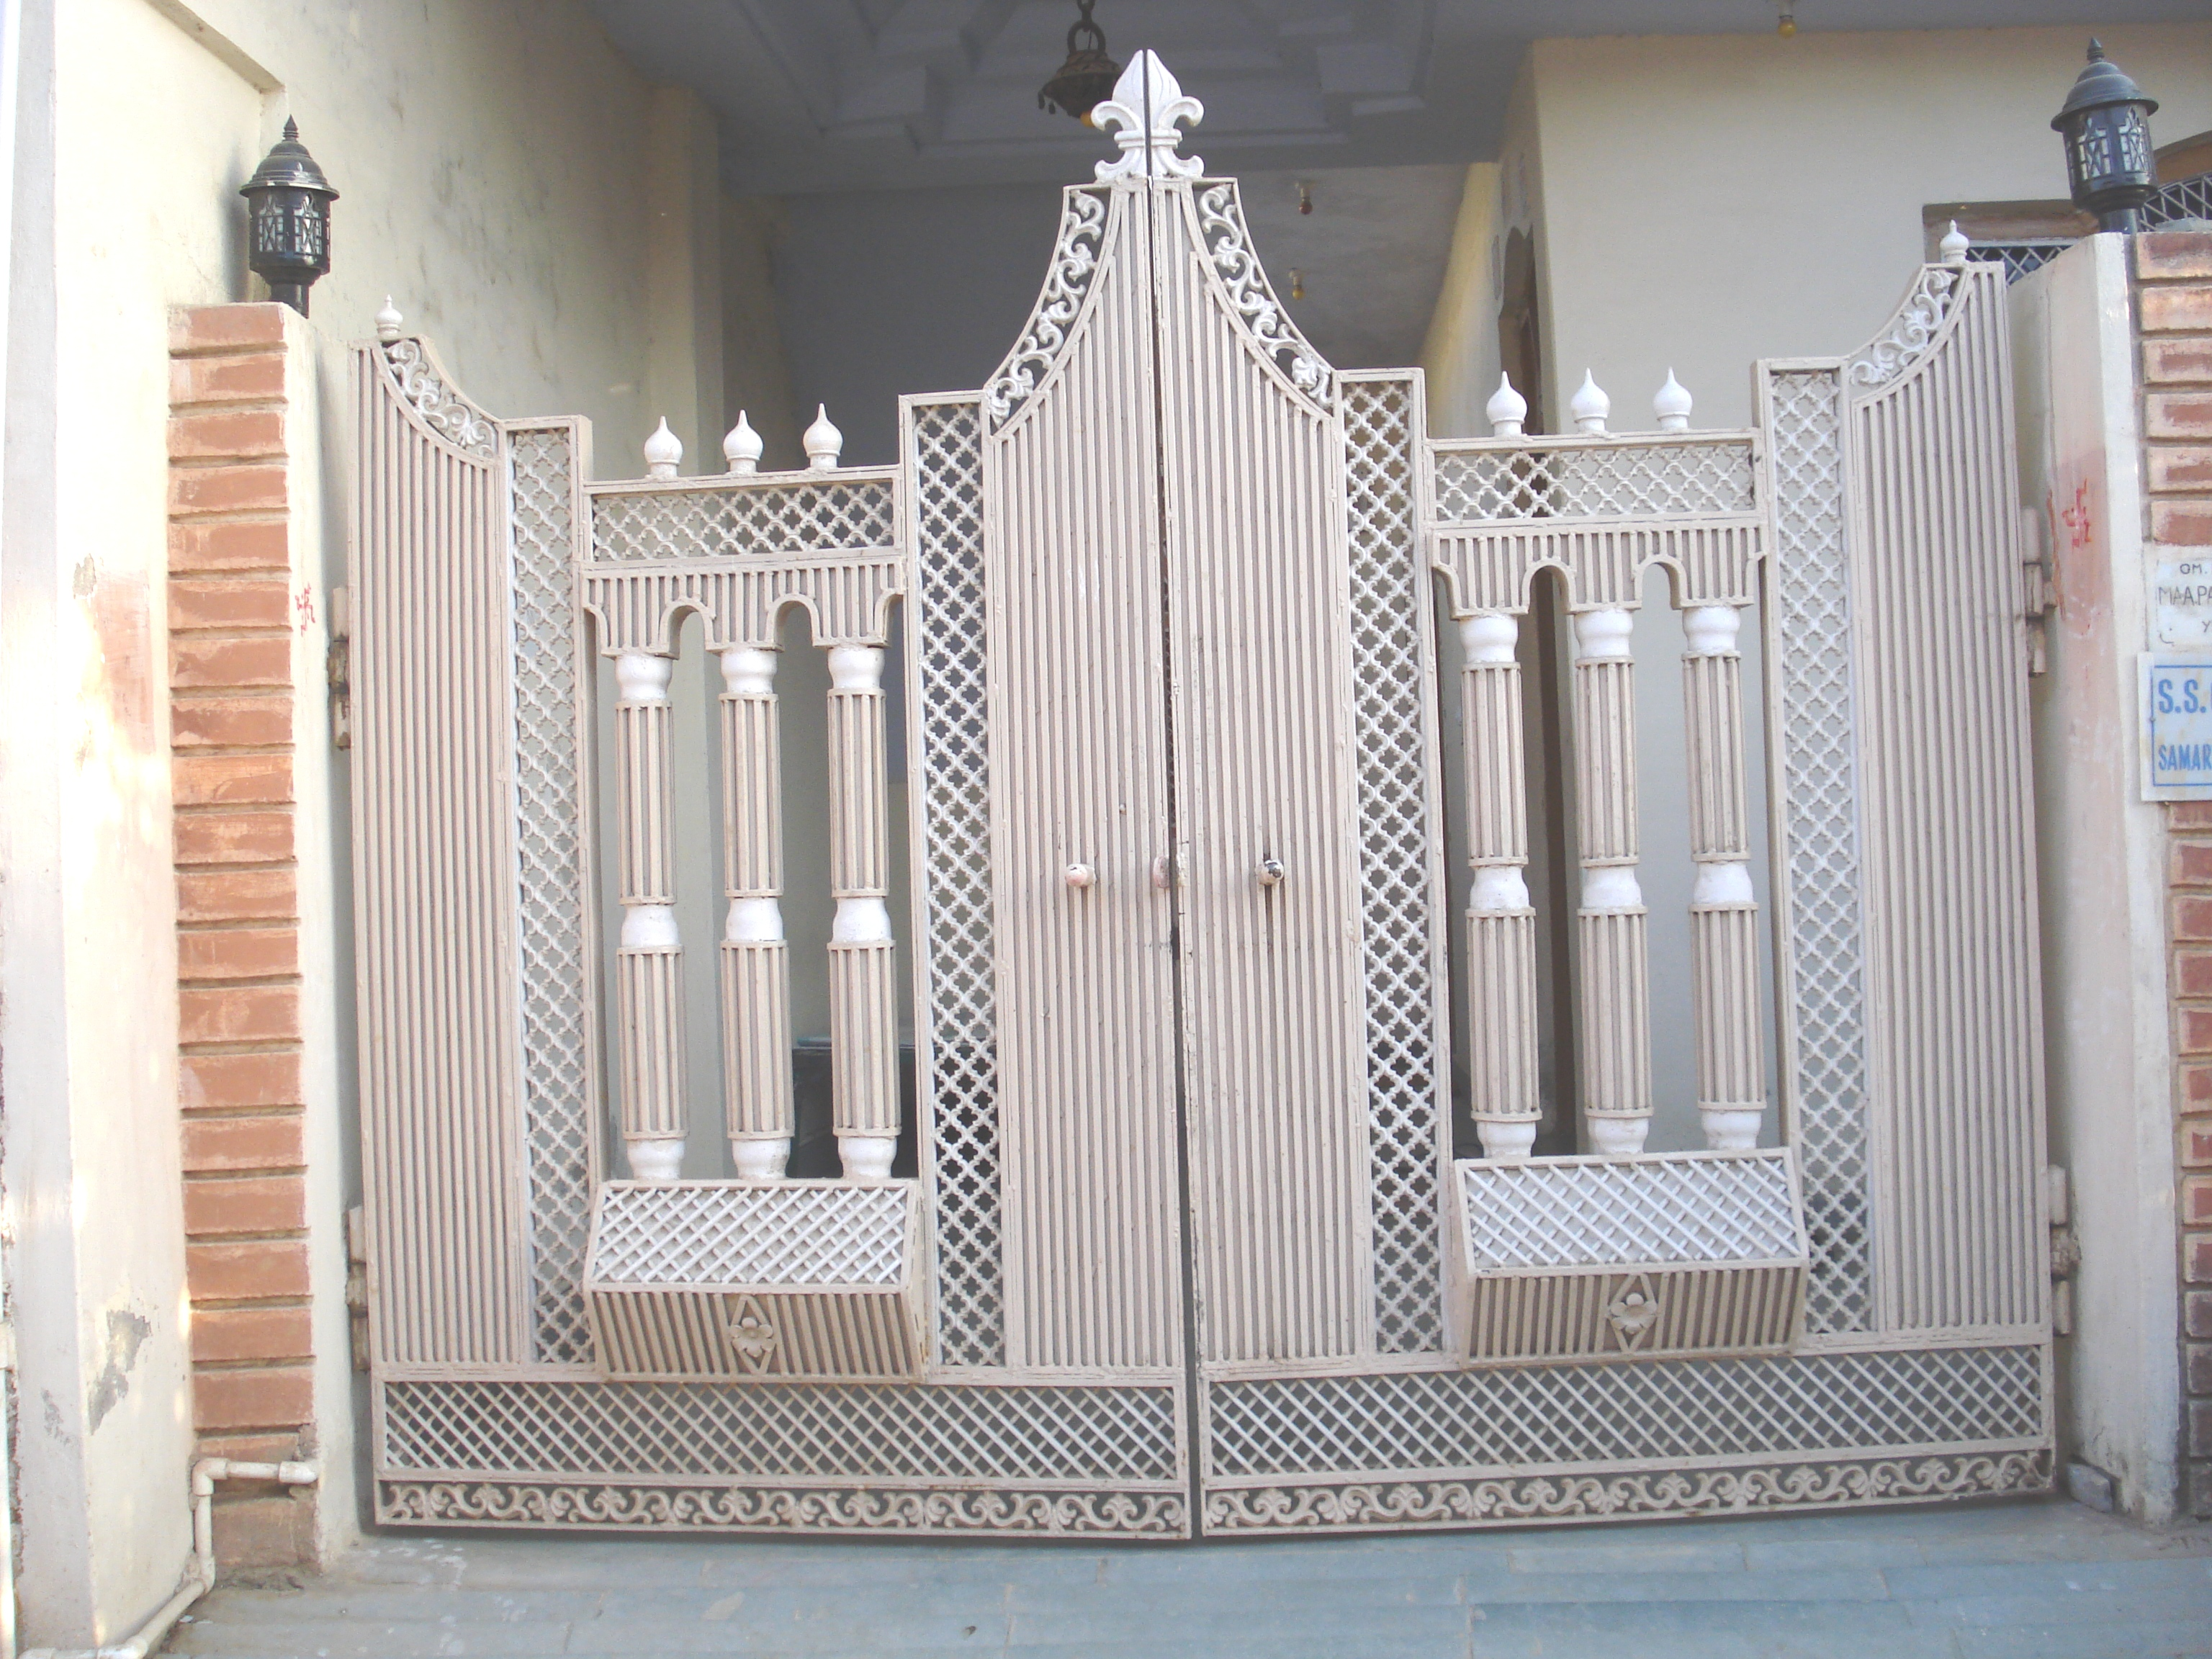 Modern Steel Main Gate Design For Home Composition - Home Decorating ...